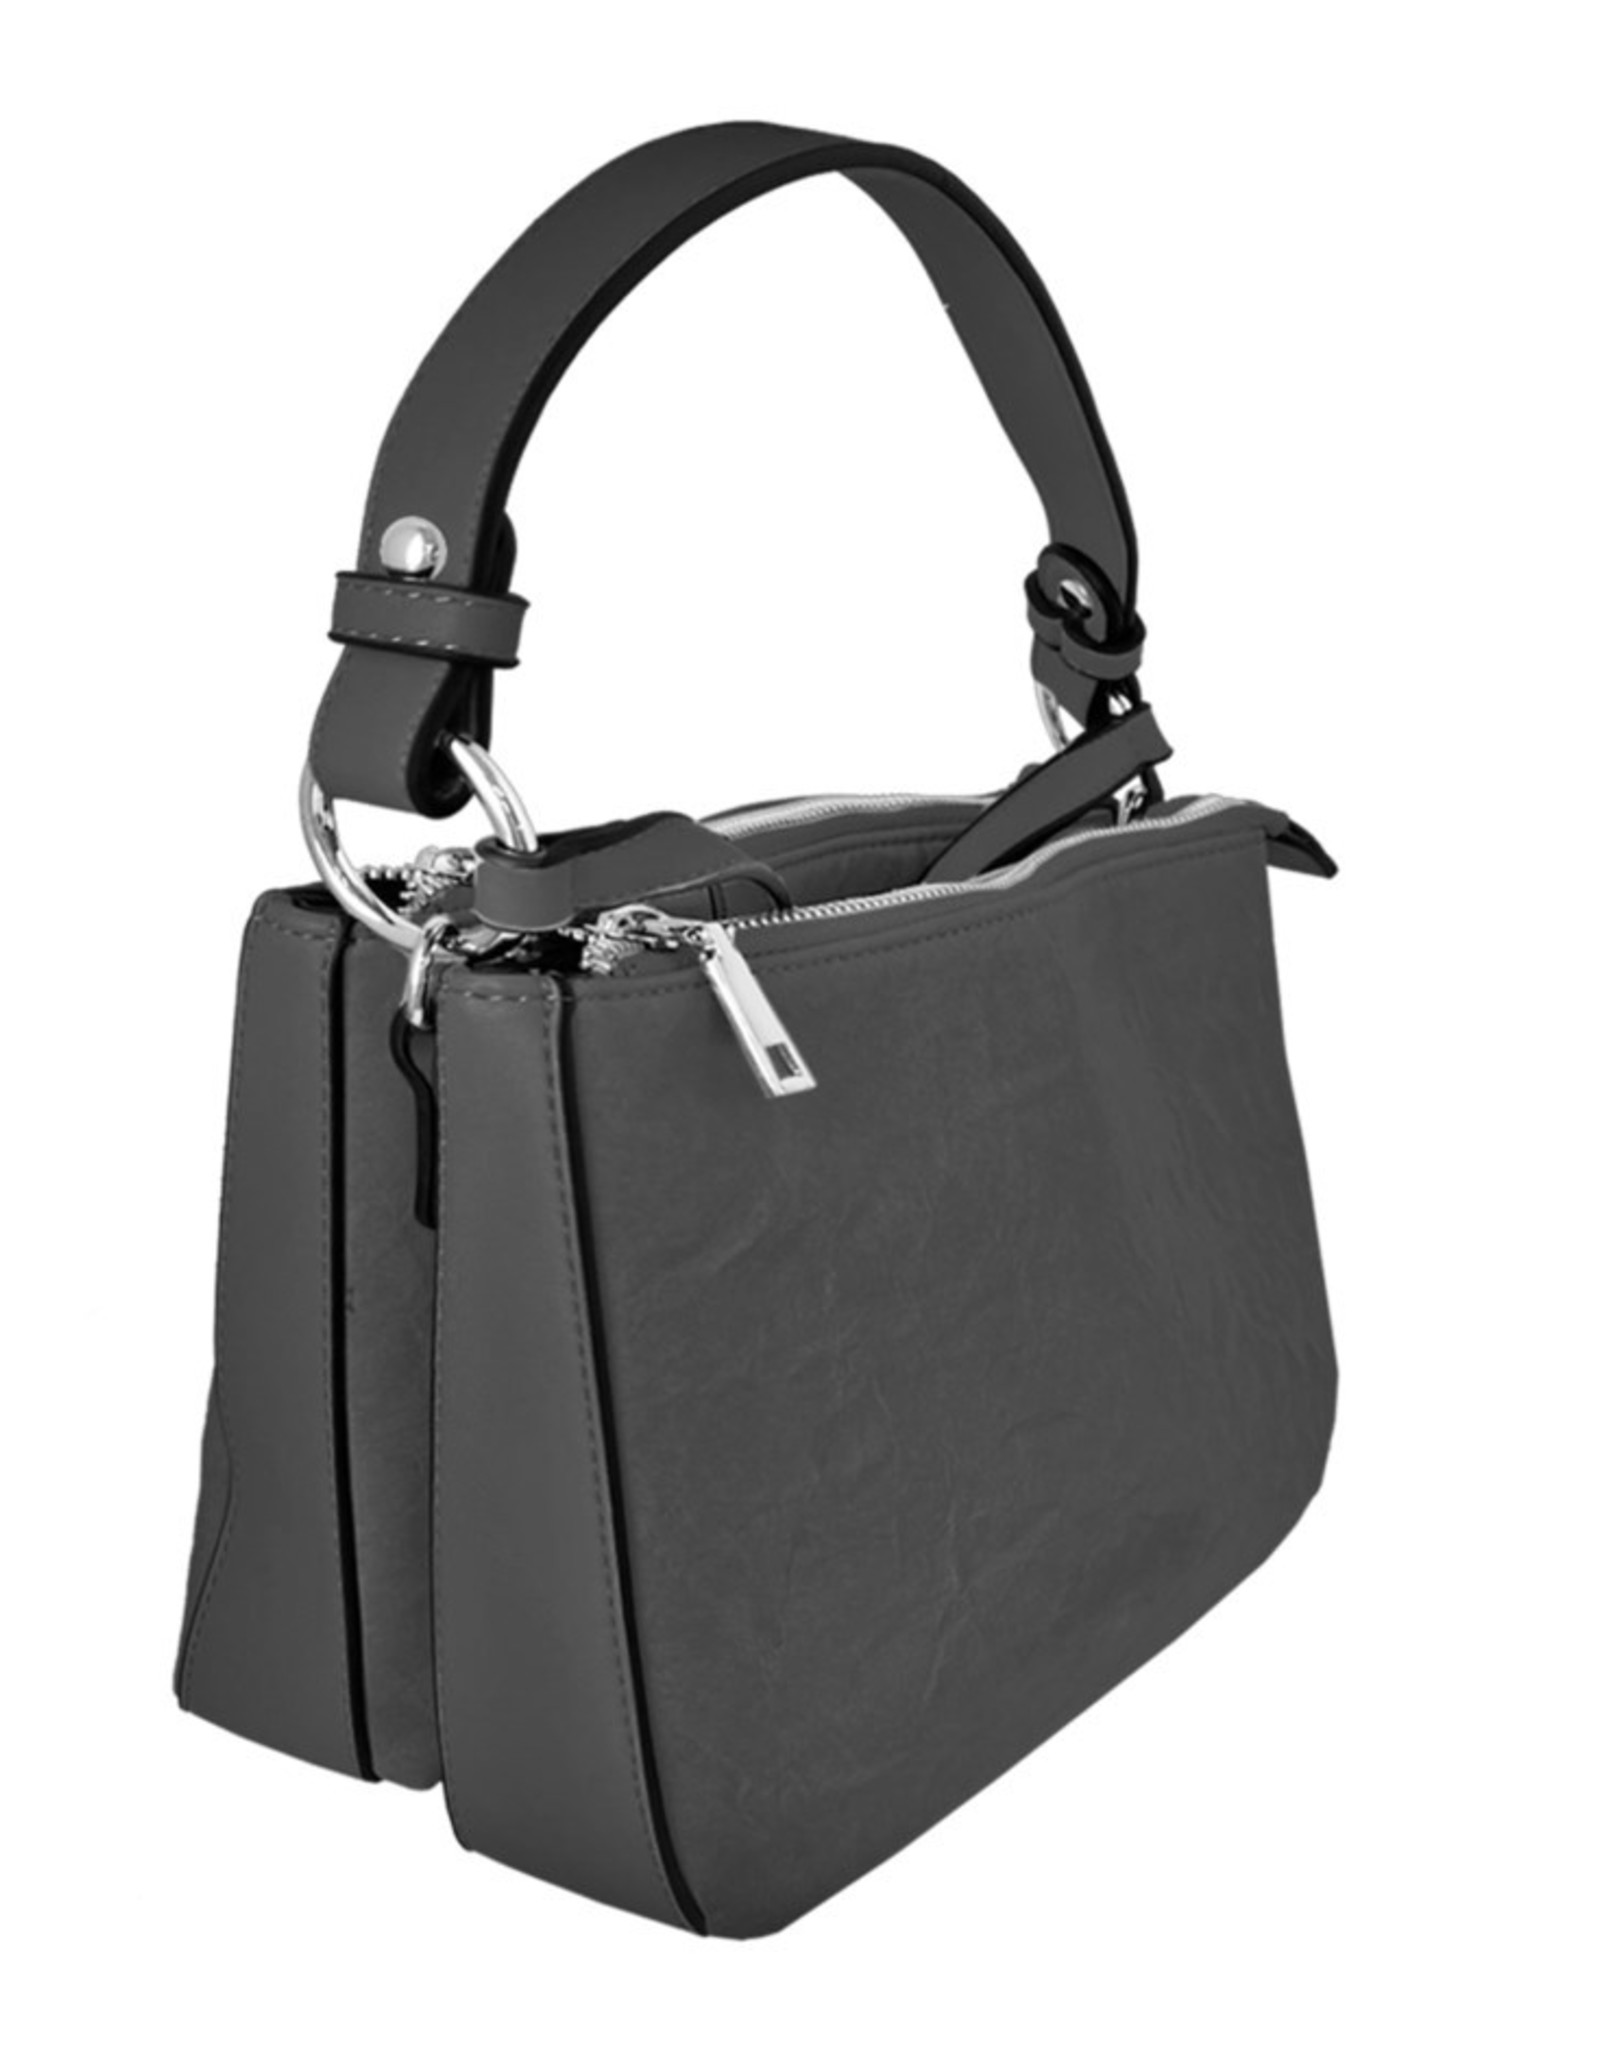 Black Handle & Strap Purse